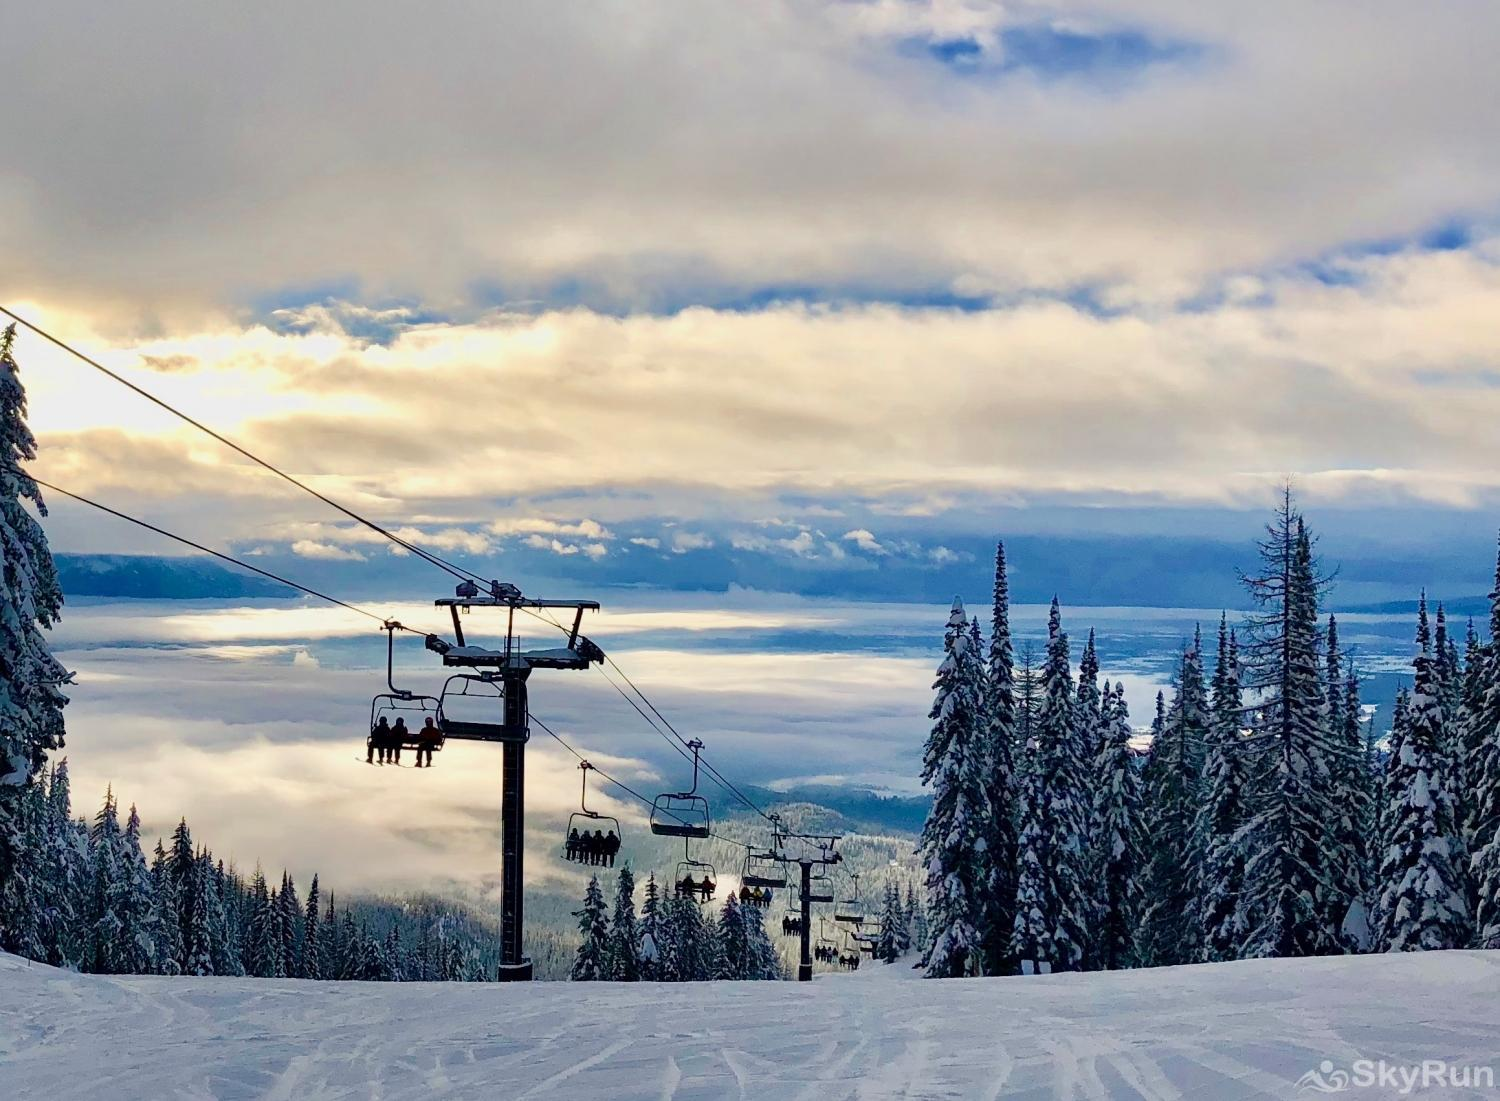 Highland Huckleberry Lodge Whitefish Mountain Resort - 3,000 acres, 105 marked trails